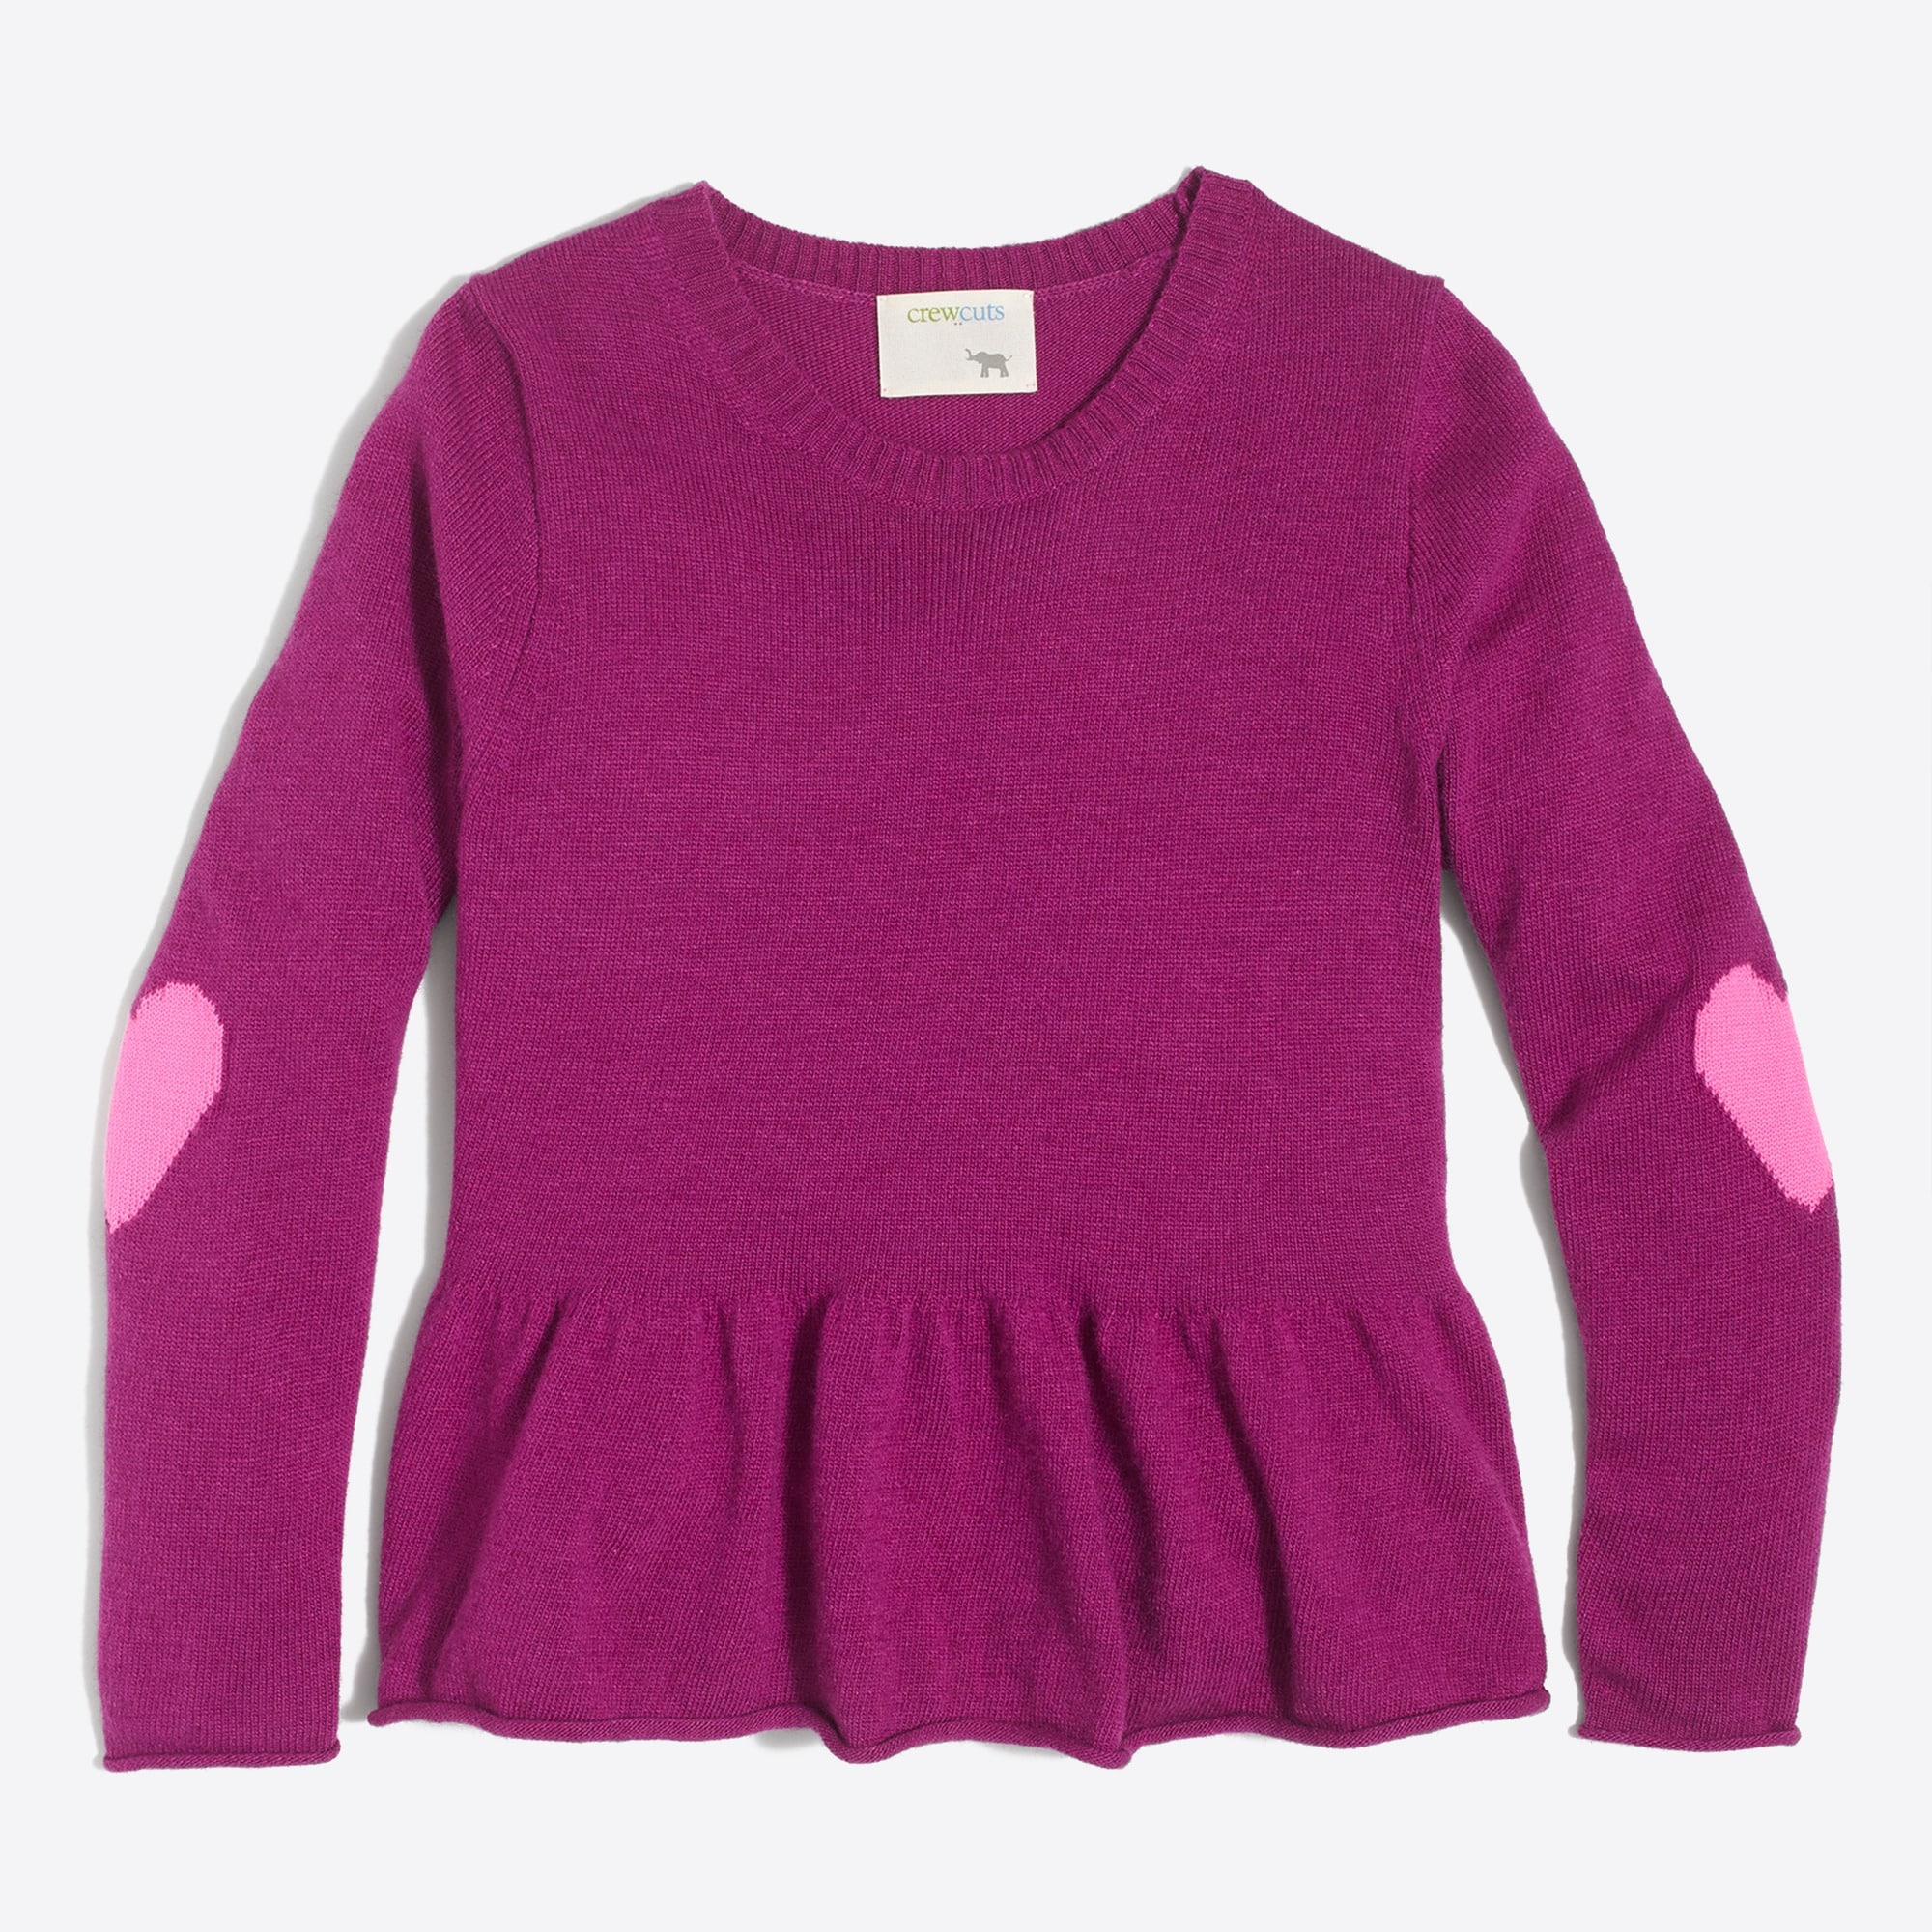 Girls' heart elbow patch peplum sweater